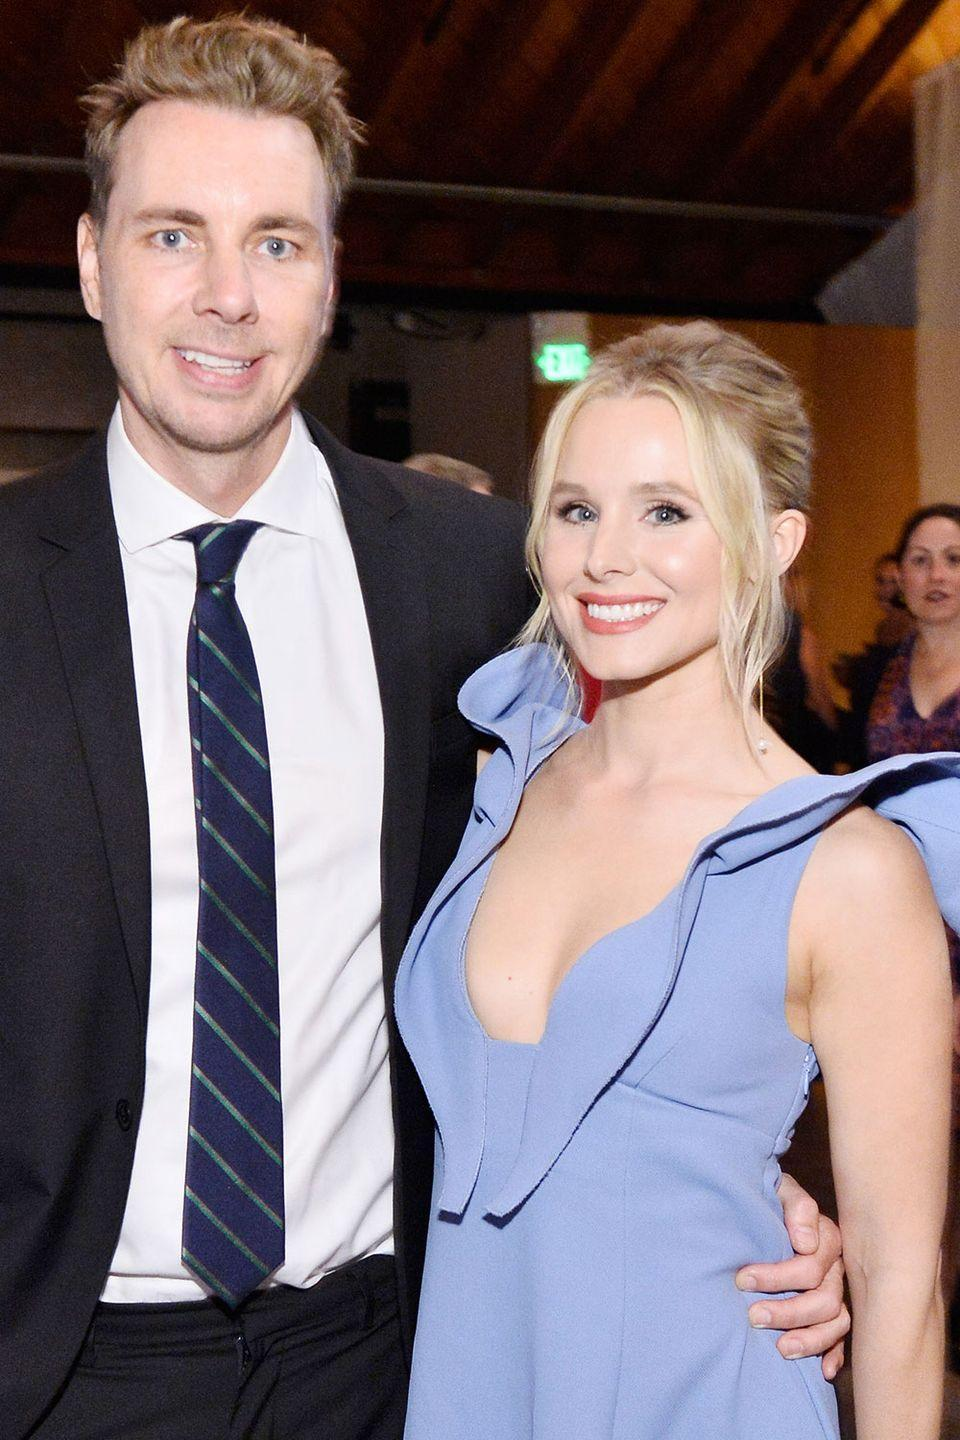 <p>They're a funny pair, and not just because they have similar facial features. Their chemistry is as undeniable as their resemblance. </p>